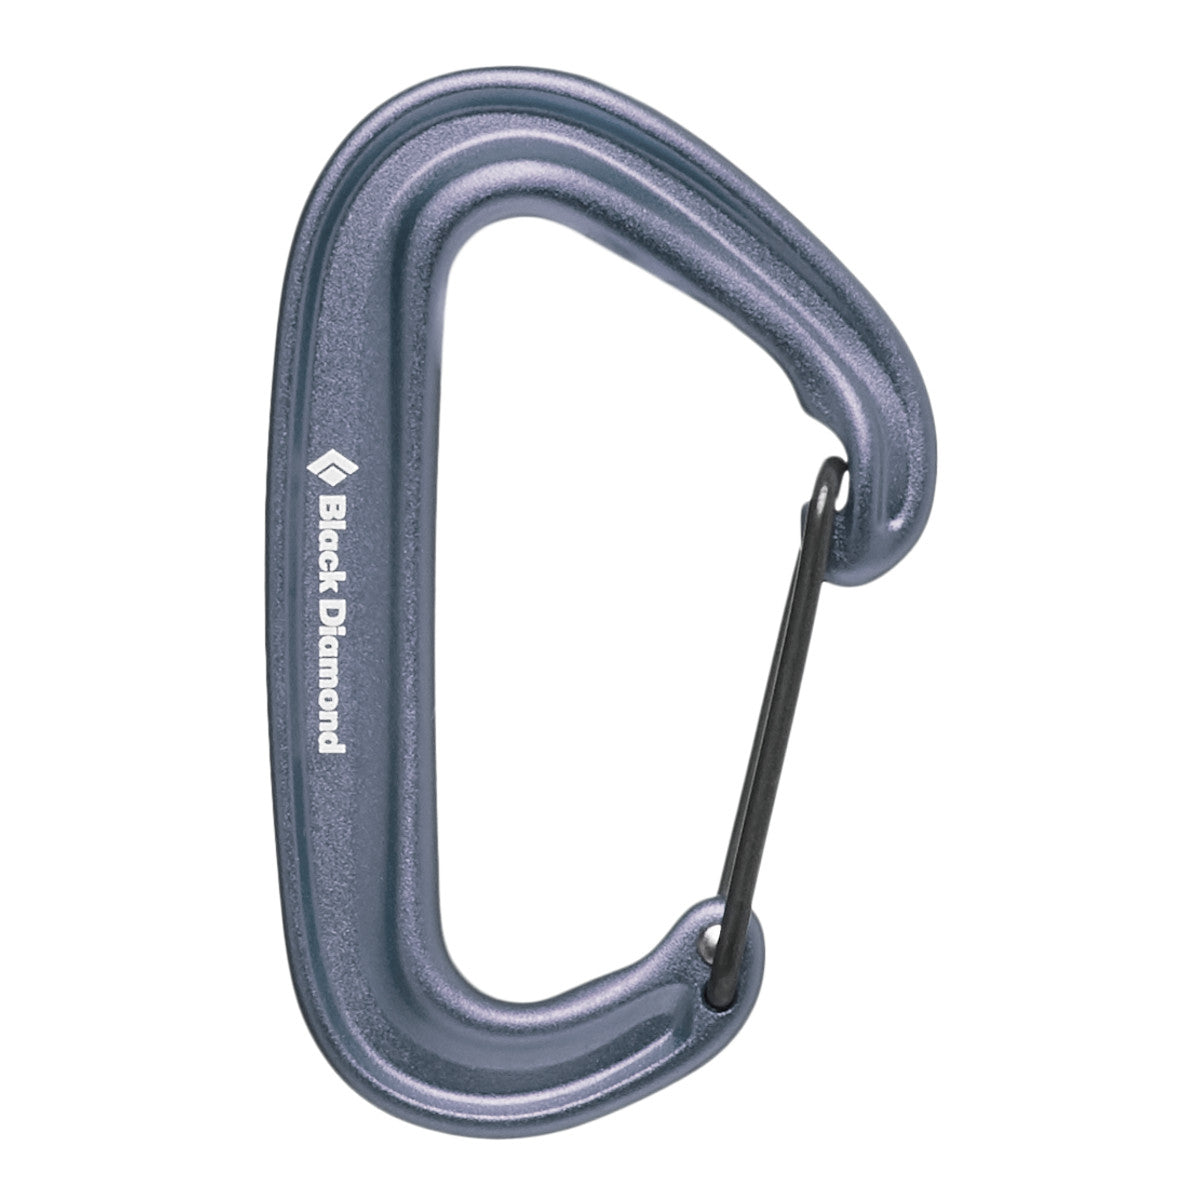 Black Diamond Miniwire Carabiner in Gray